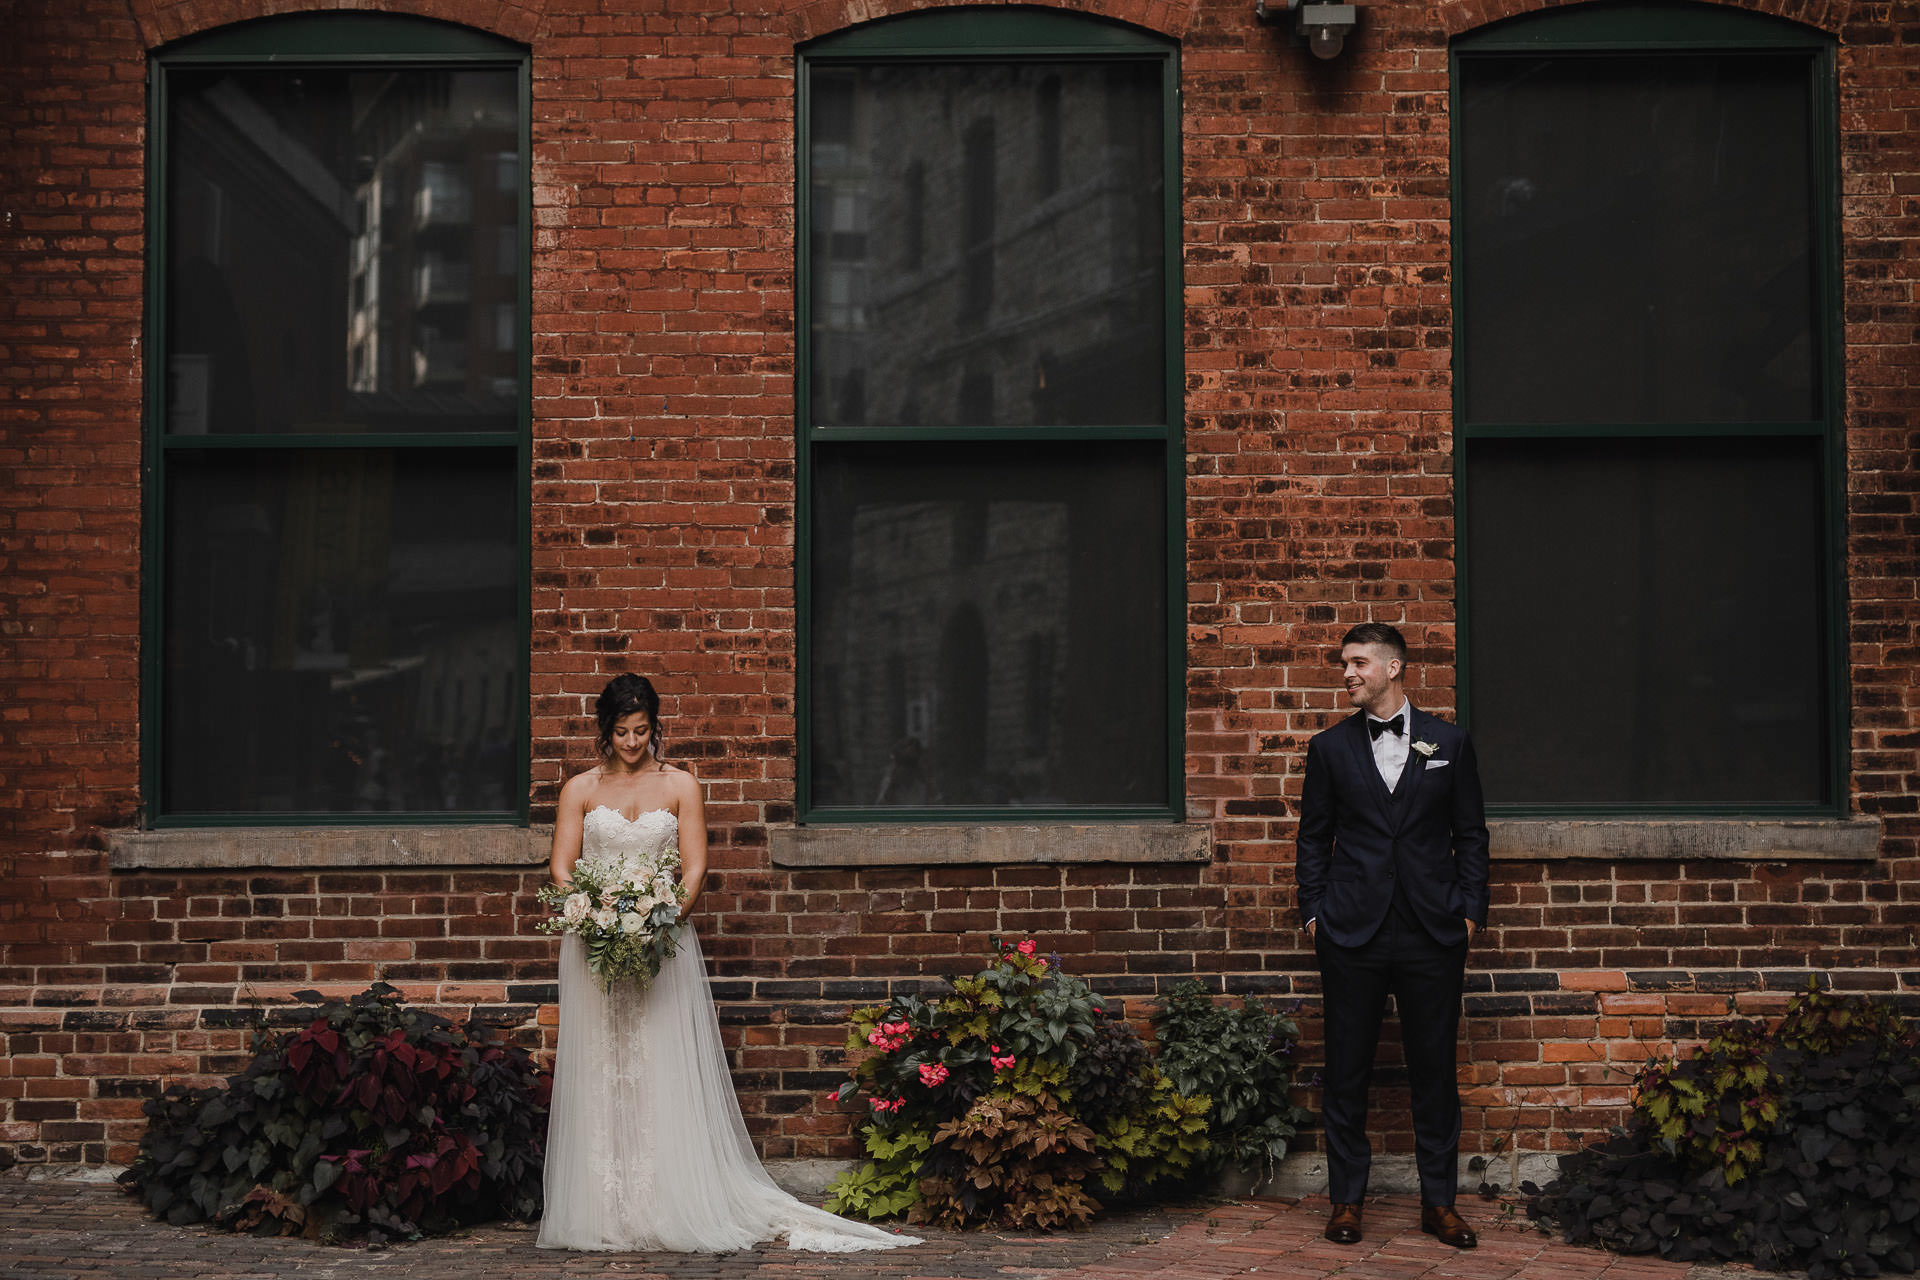 Distillery District Wedding - bride and groom in front of brick wall with windows